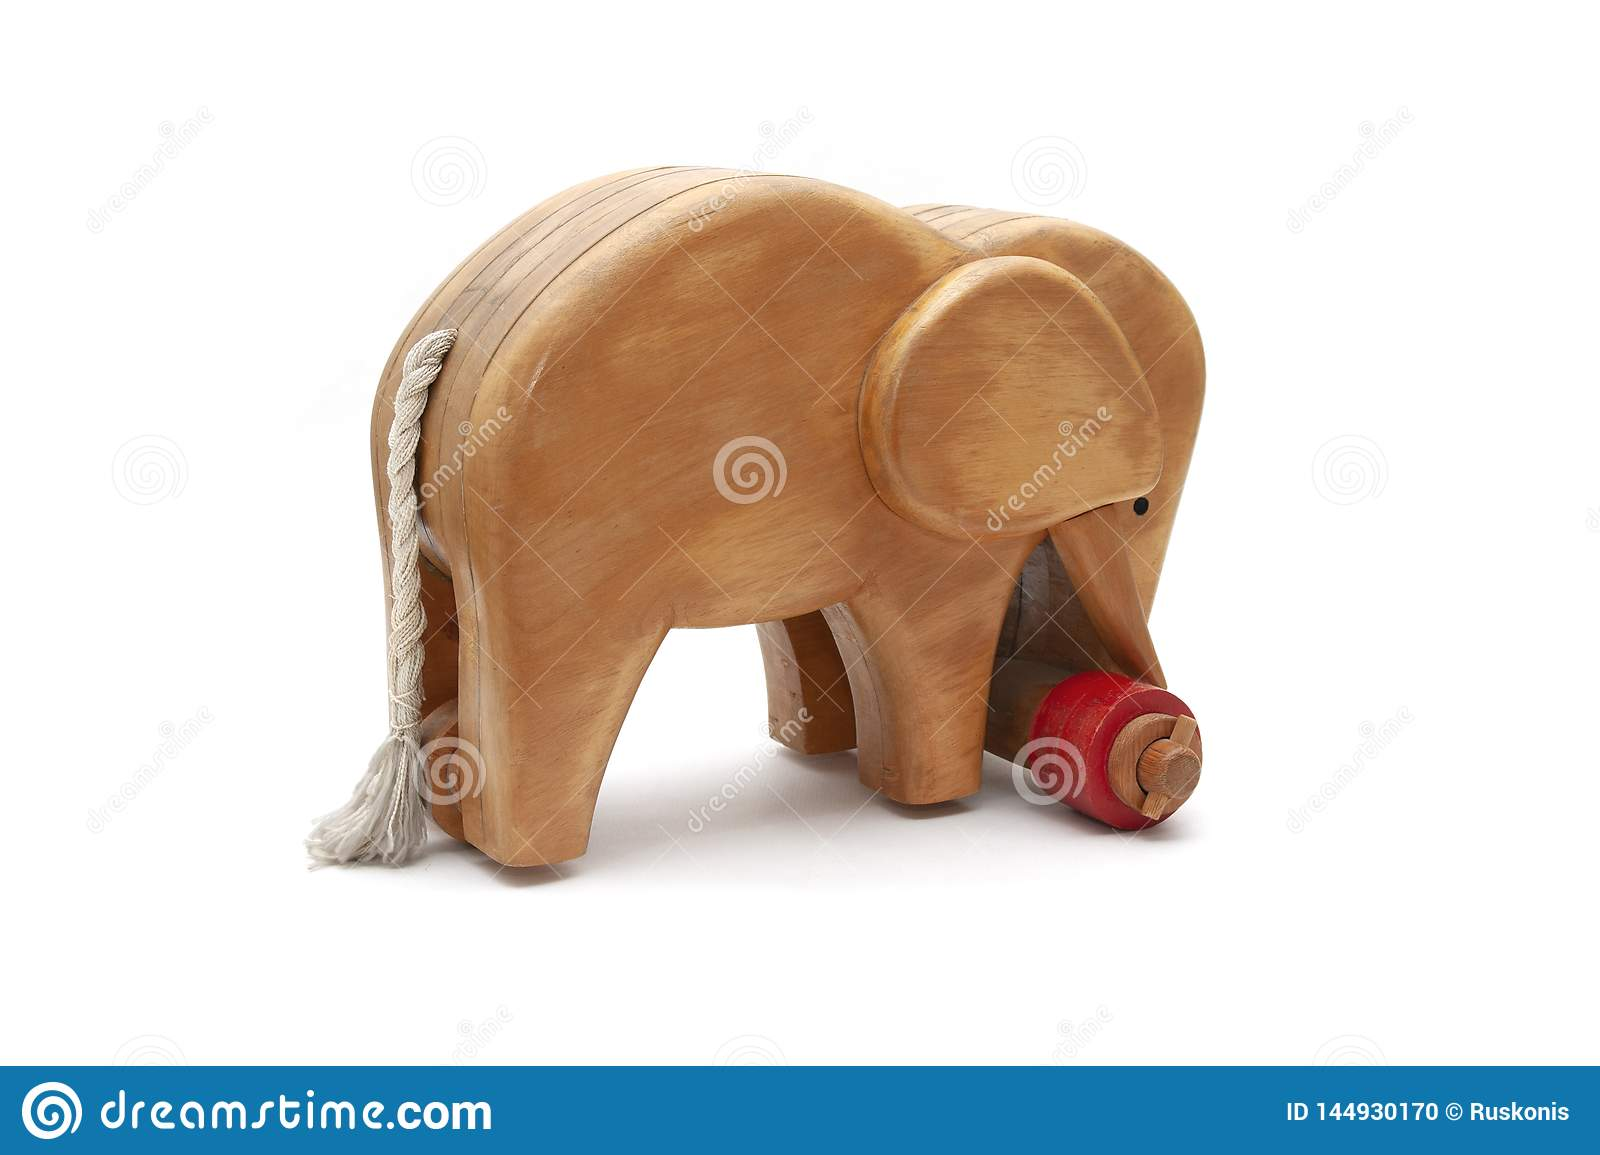 Wooden elephant with red wheels and tail